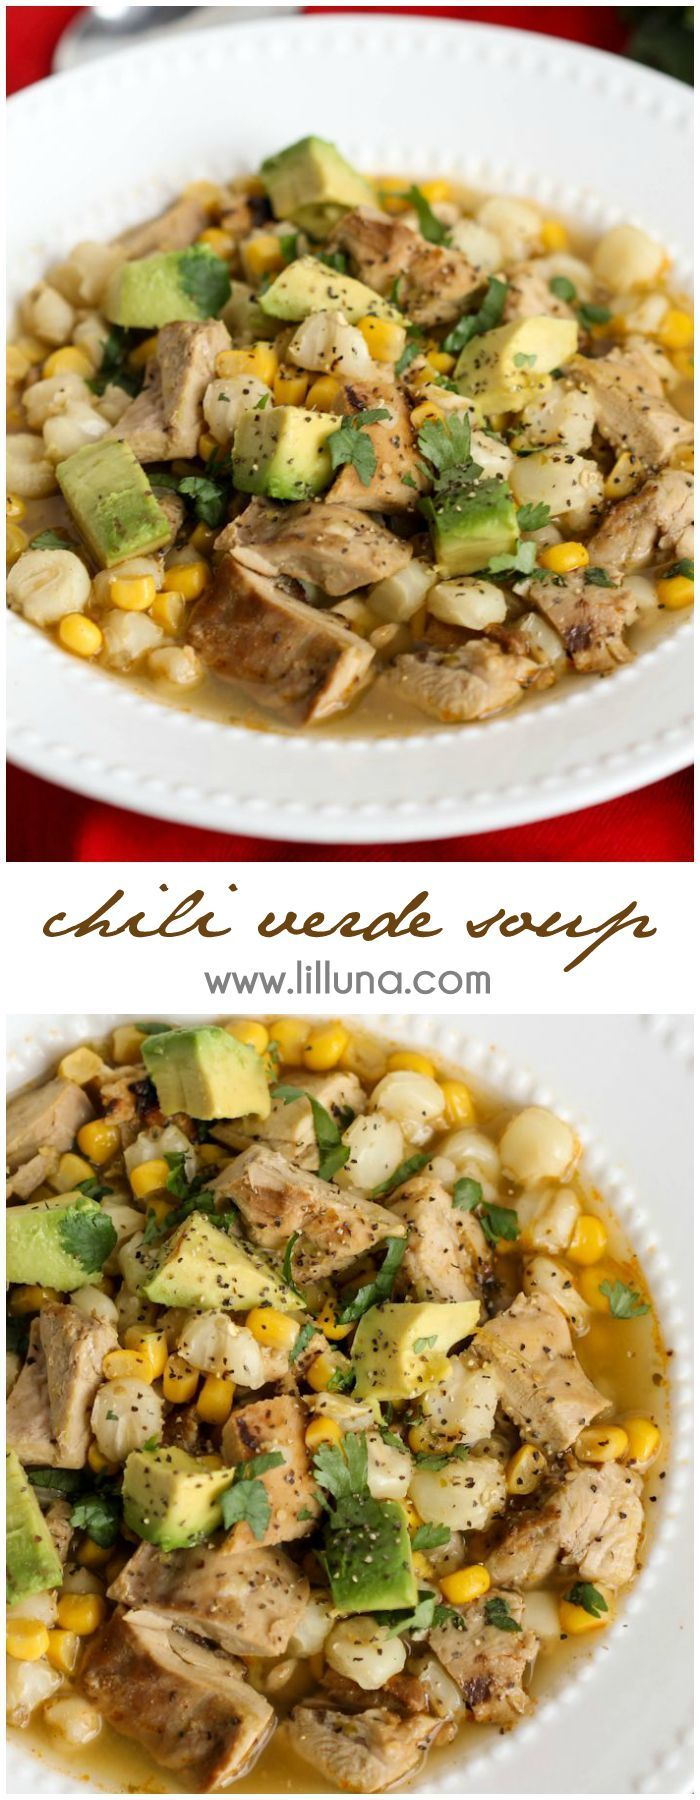 Delicious Chili Verde Soup filled with chicken, corn, avocado, cheese and more! It's SO good! Get the recipe on { lilluna.com }